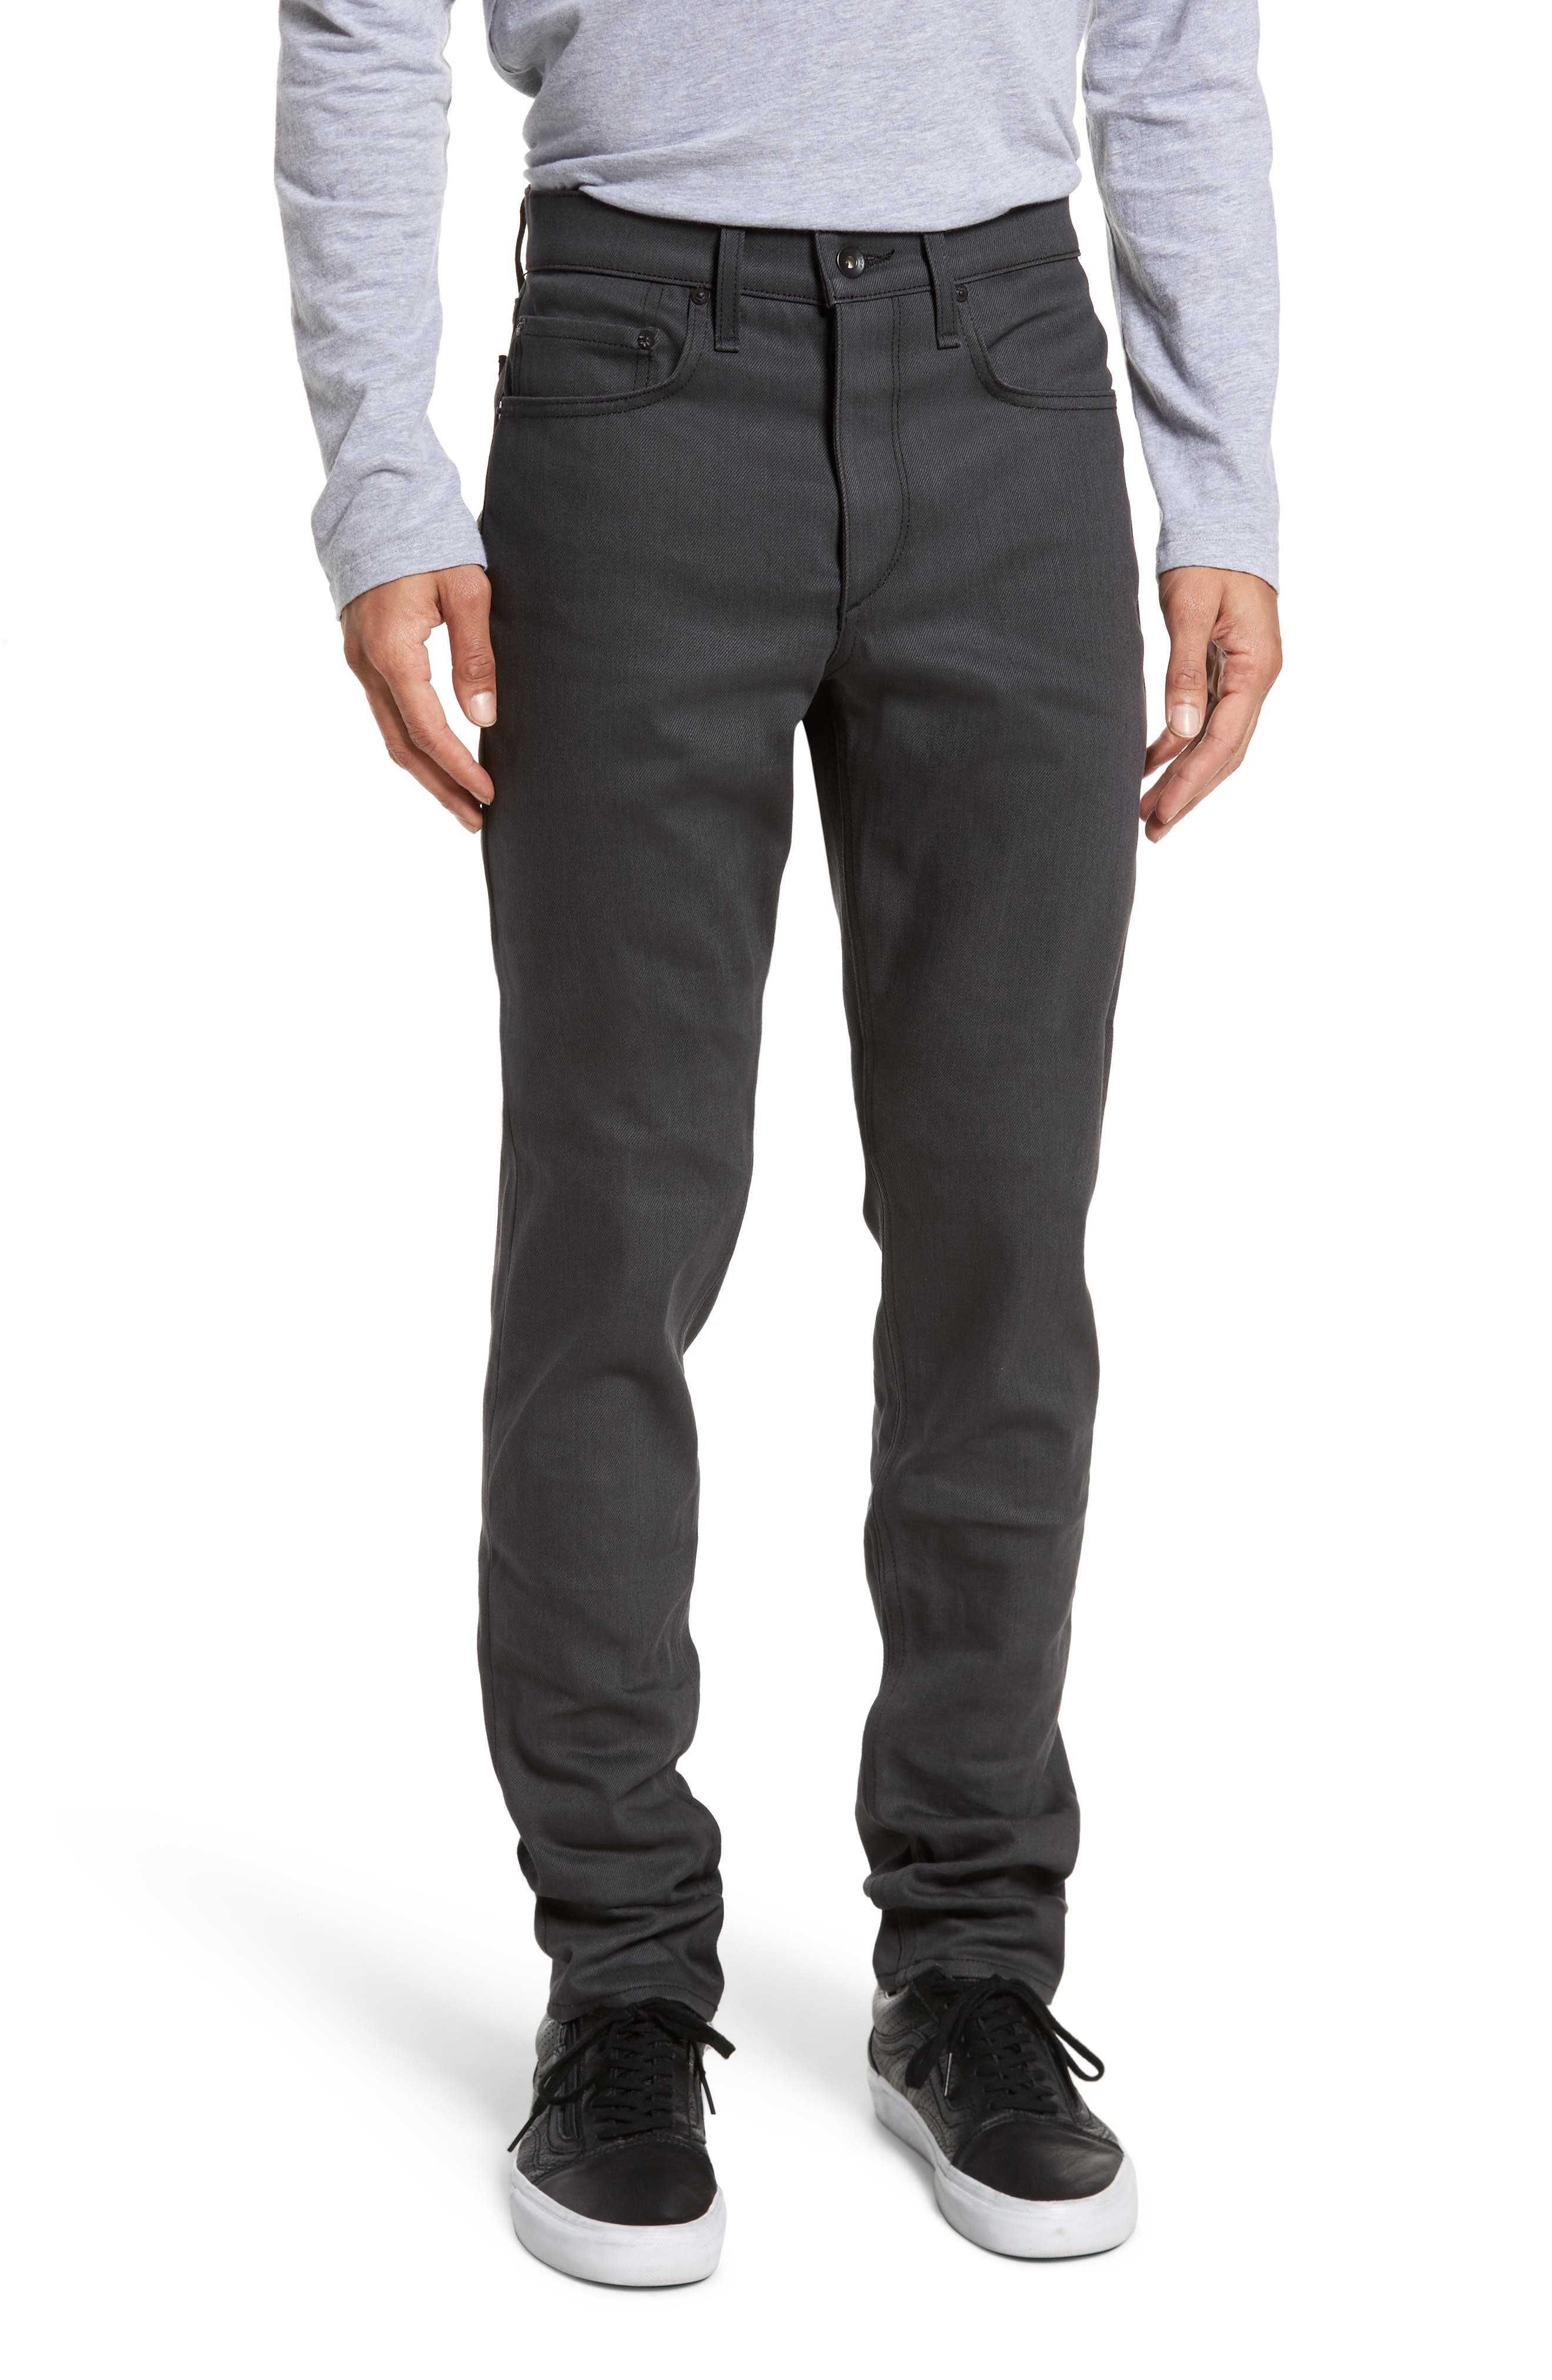 Fit 1 Skinny Fit Jeans,                         Main,                         color, Rocky